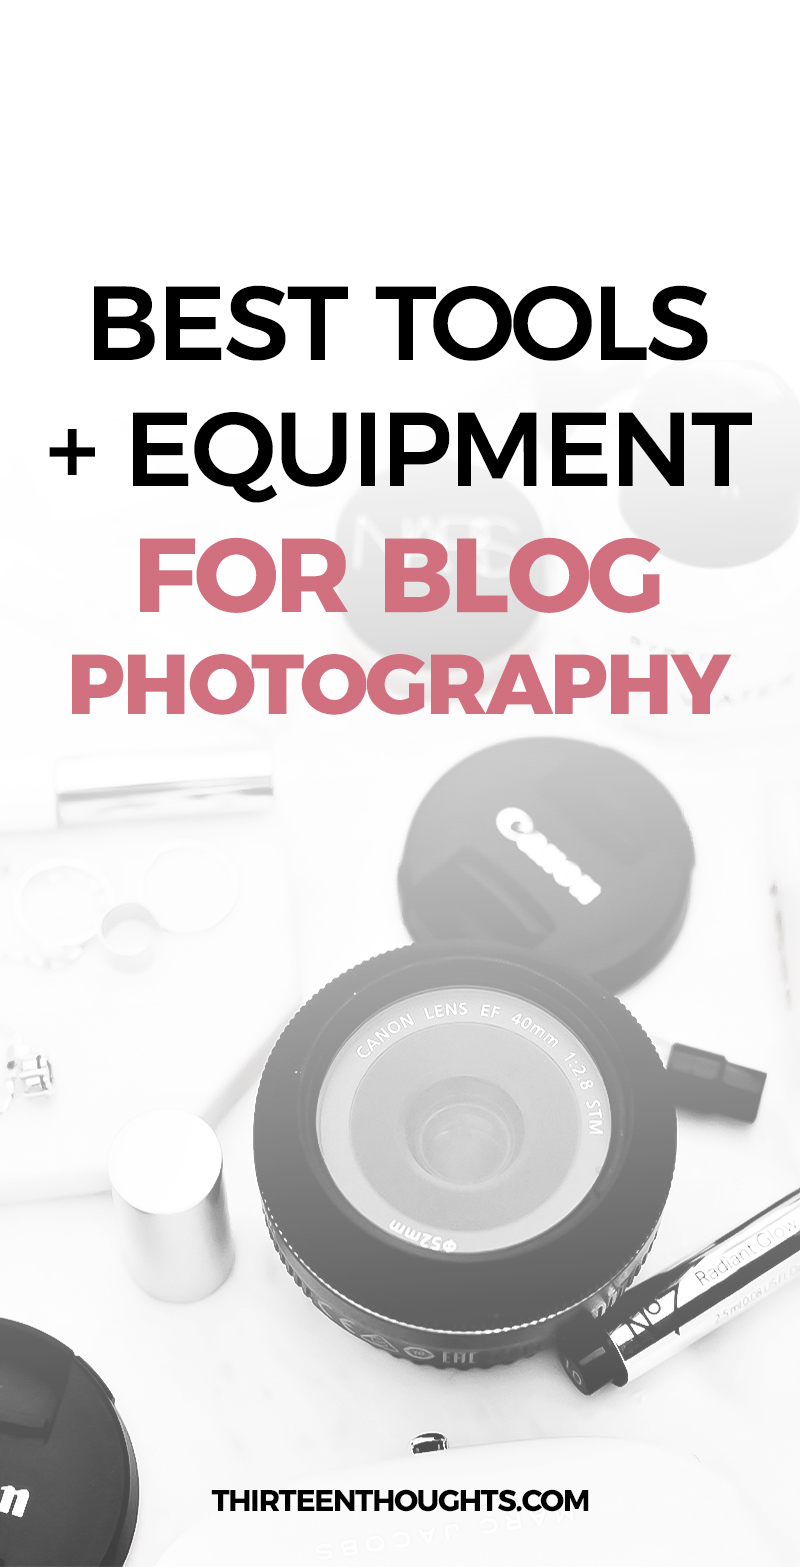 Tools for blog photography